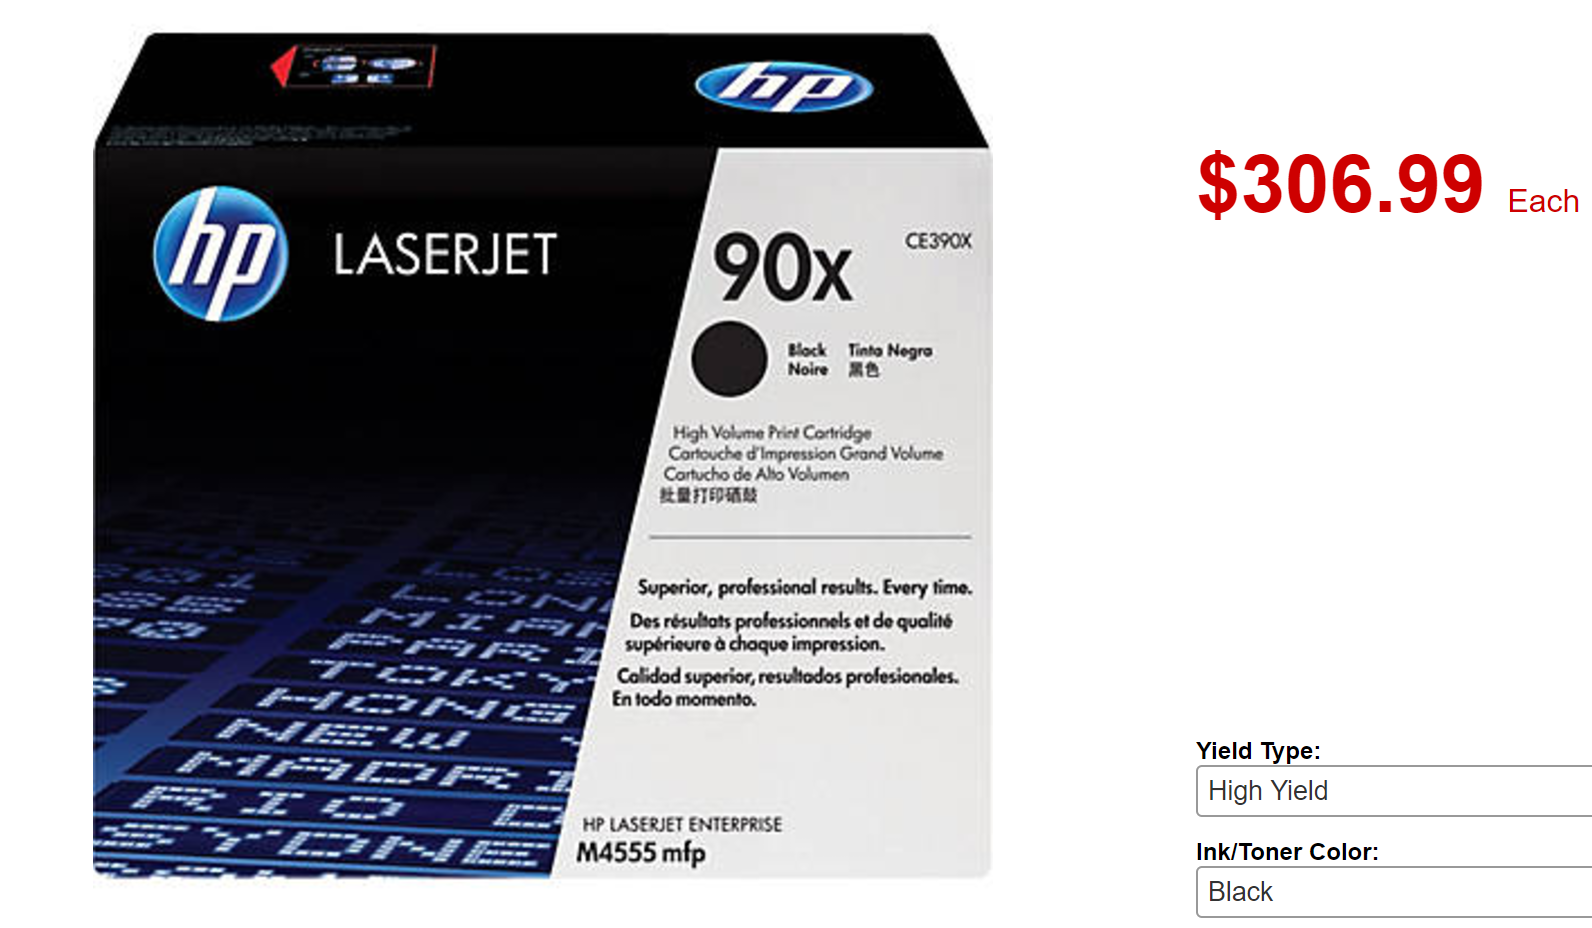 HP Brand 90X Cartridge Price Image.png